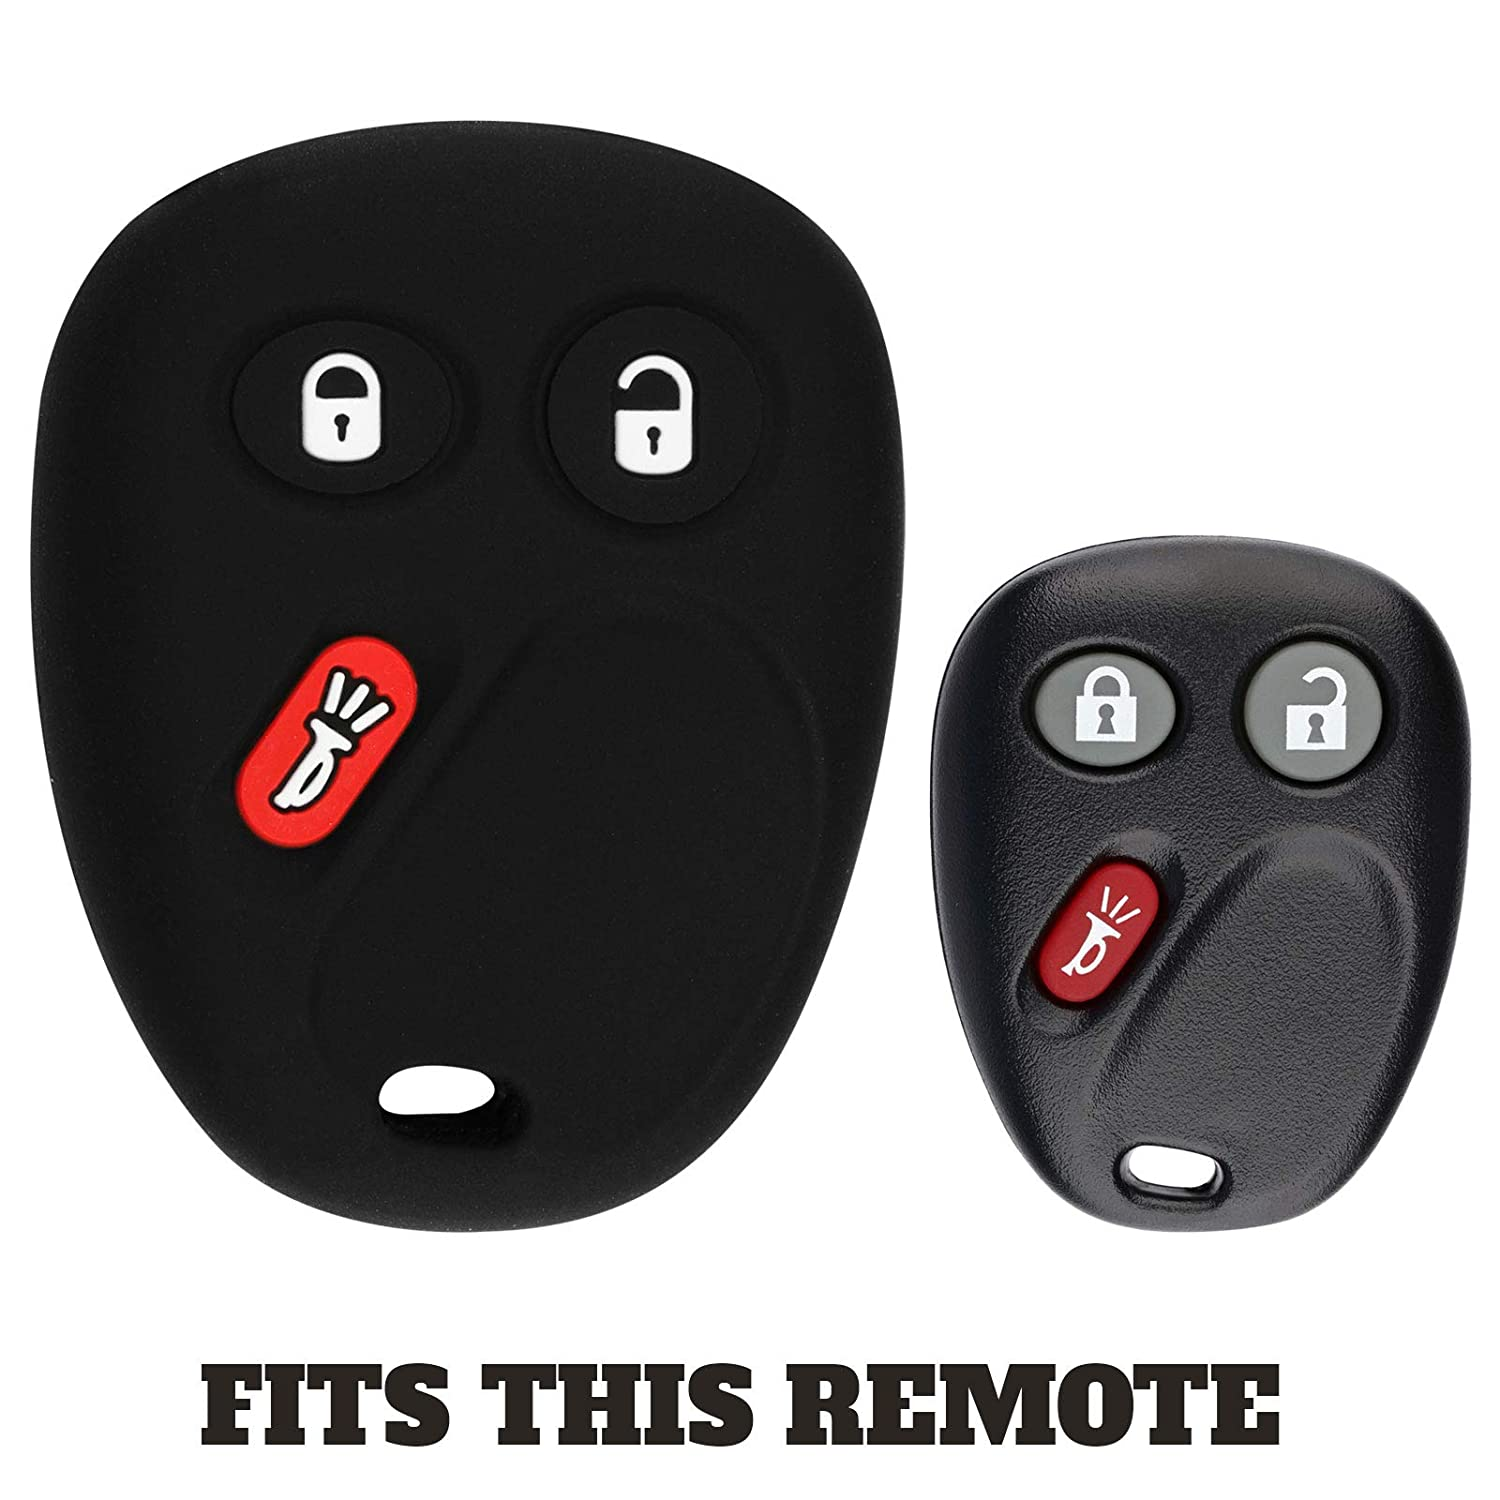 KeylessOption 15008008 Pack of 2 15008009 KeyGuardz Keyless Entry Remote Car Key Fob Outer Shell Cover Rubber Case for LHJ011